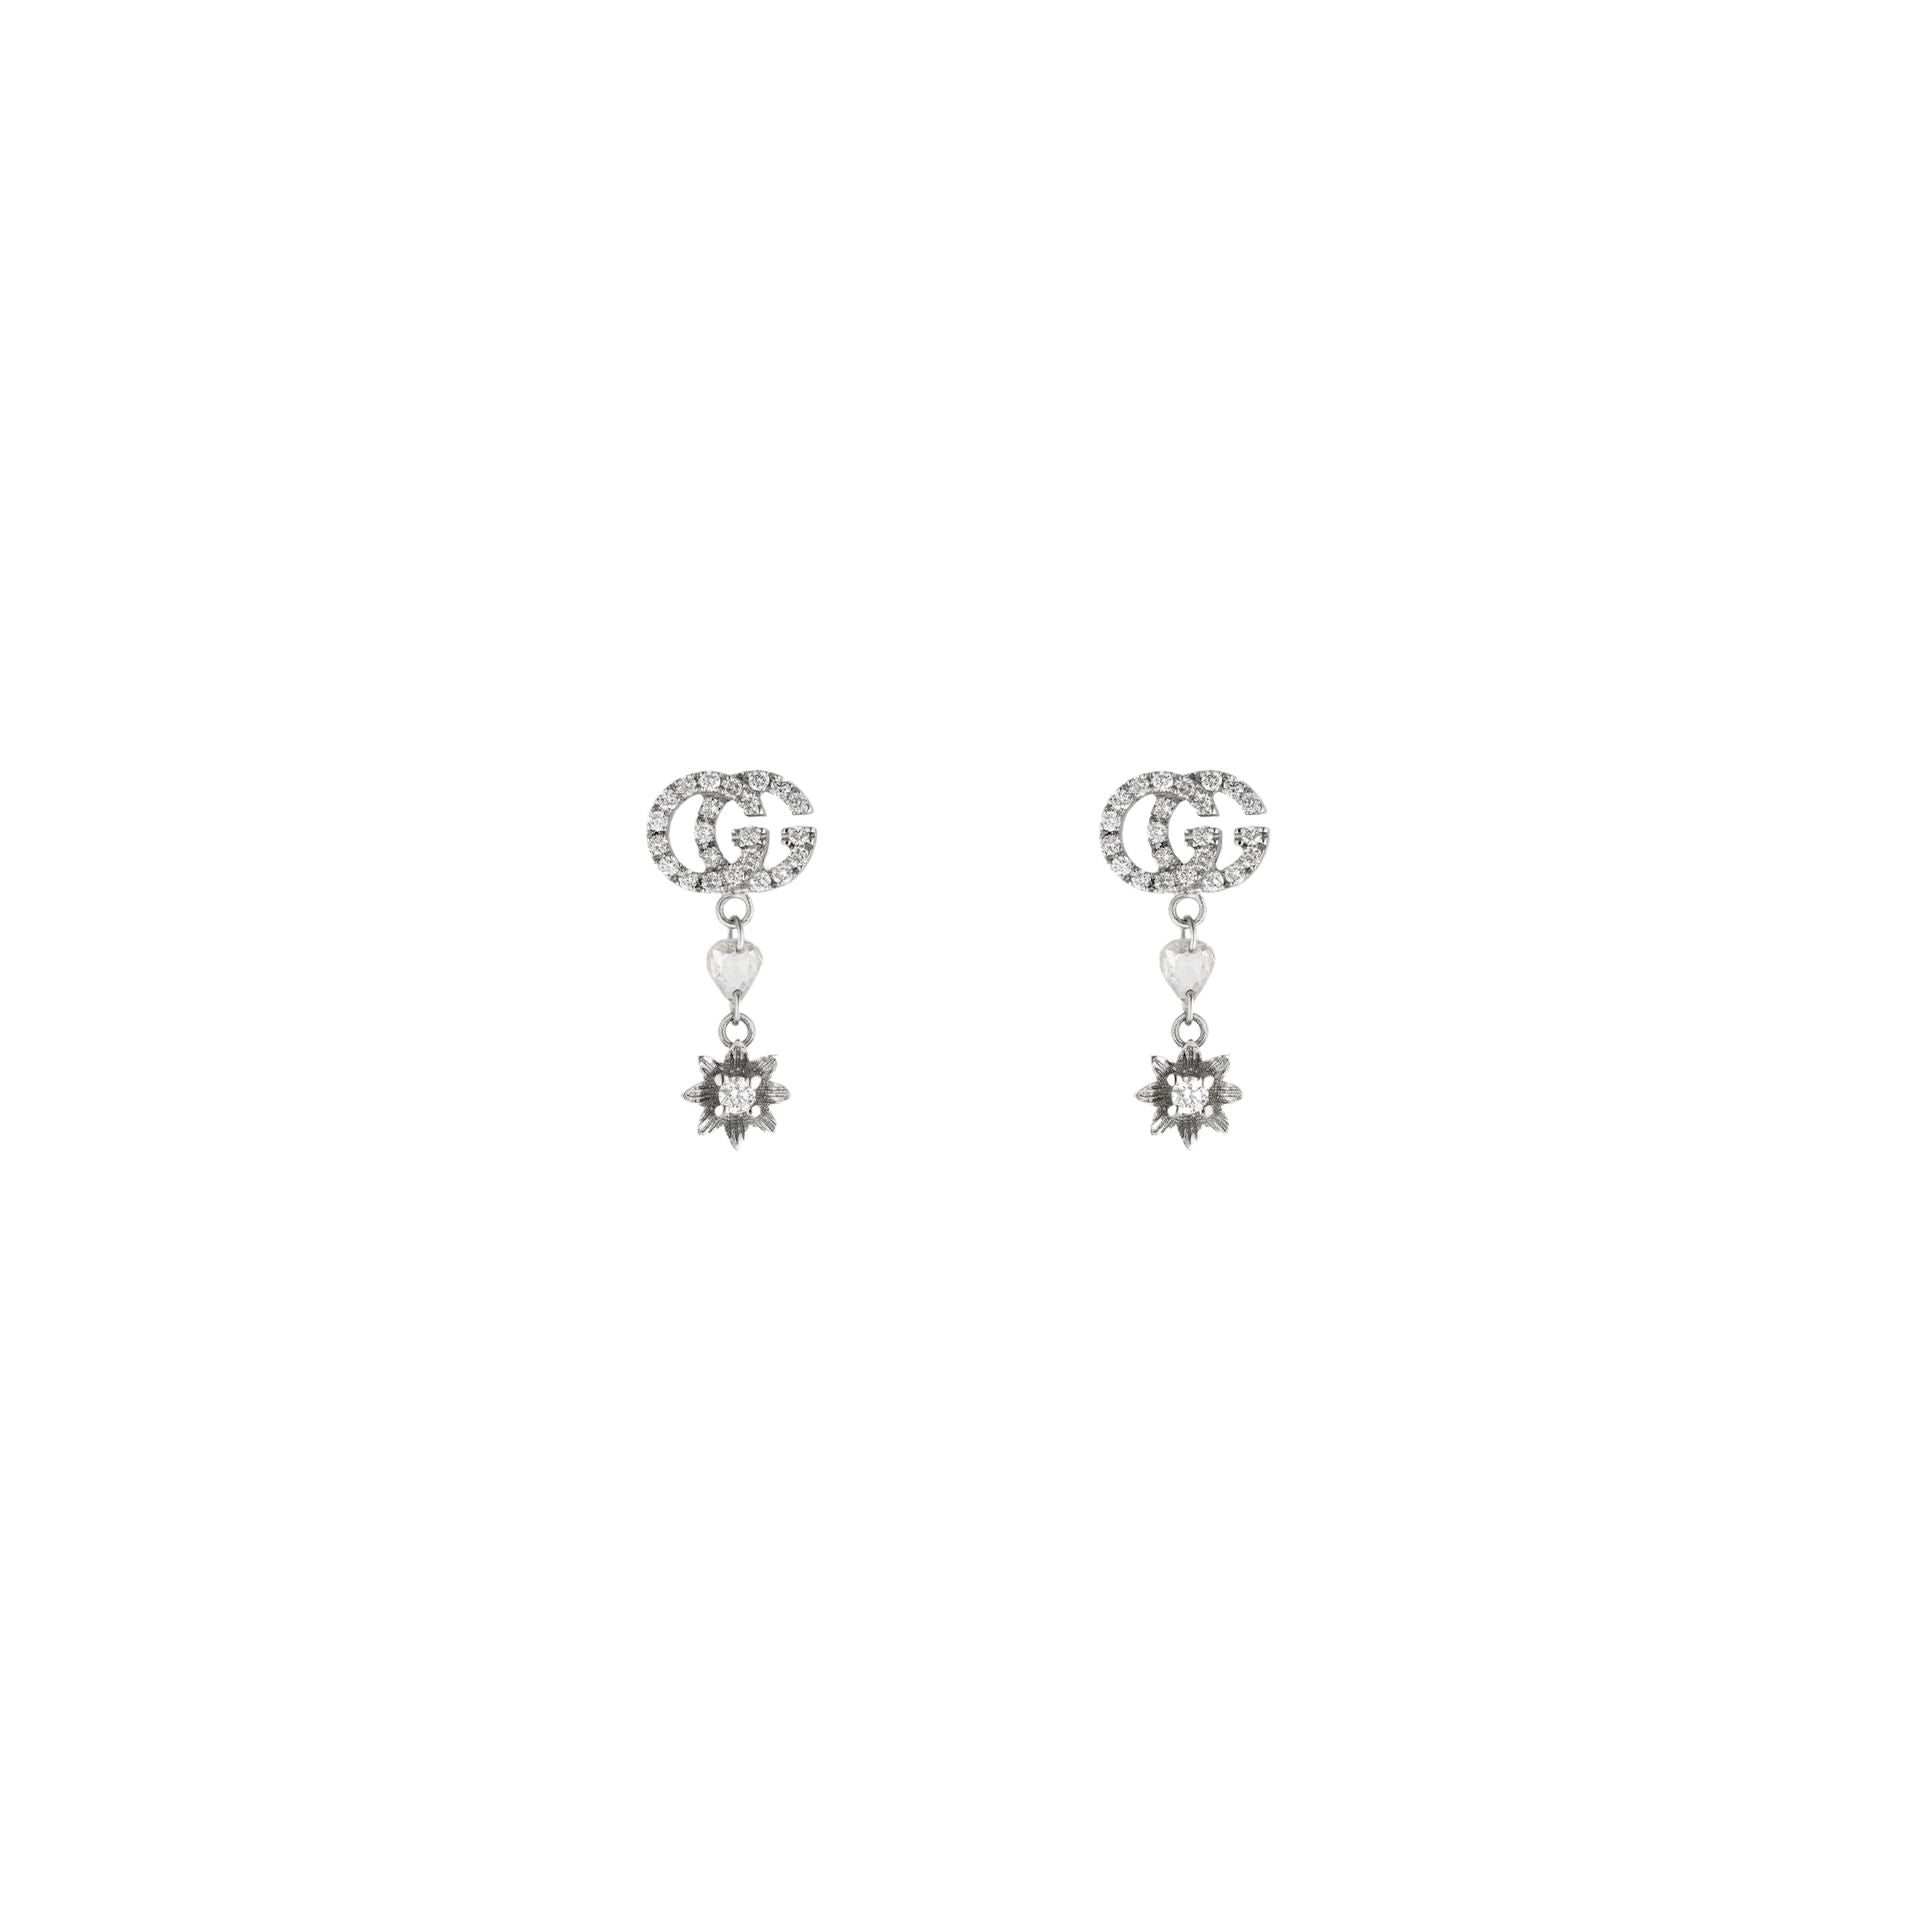 Gucci Flora Earrings in 18k White Gold with Diamonds - Orsini Jewellers NZ